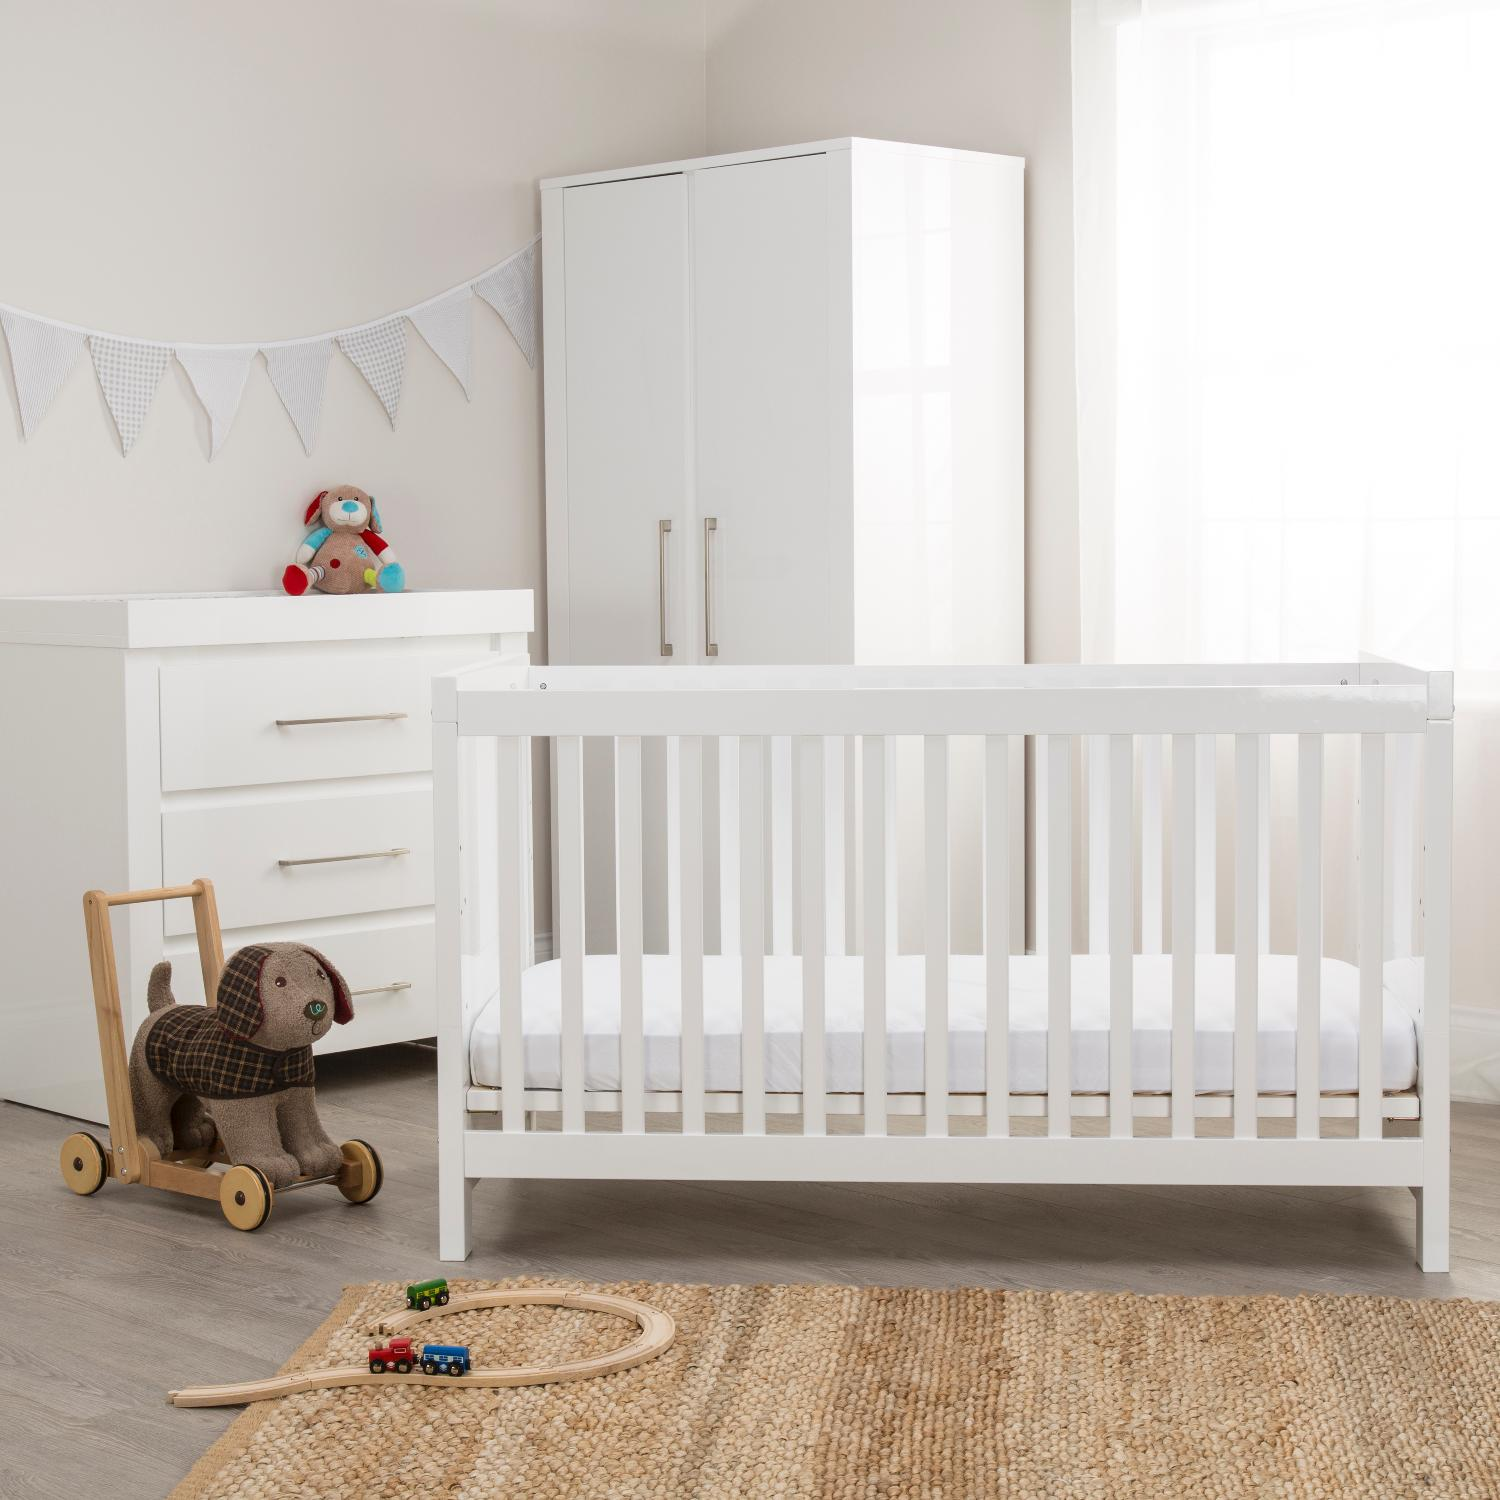 furniture : baby nursery furniture sets wooden get really magical TWBVZHC